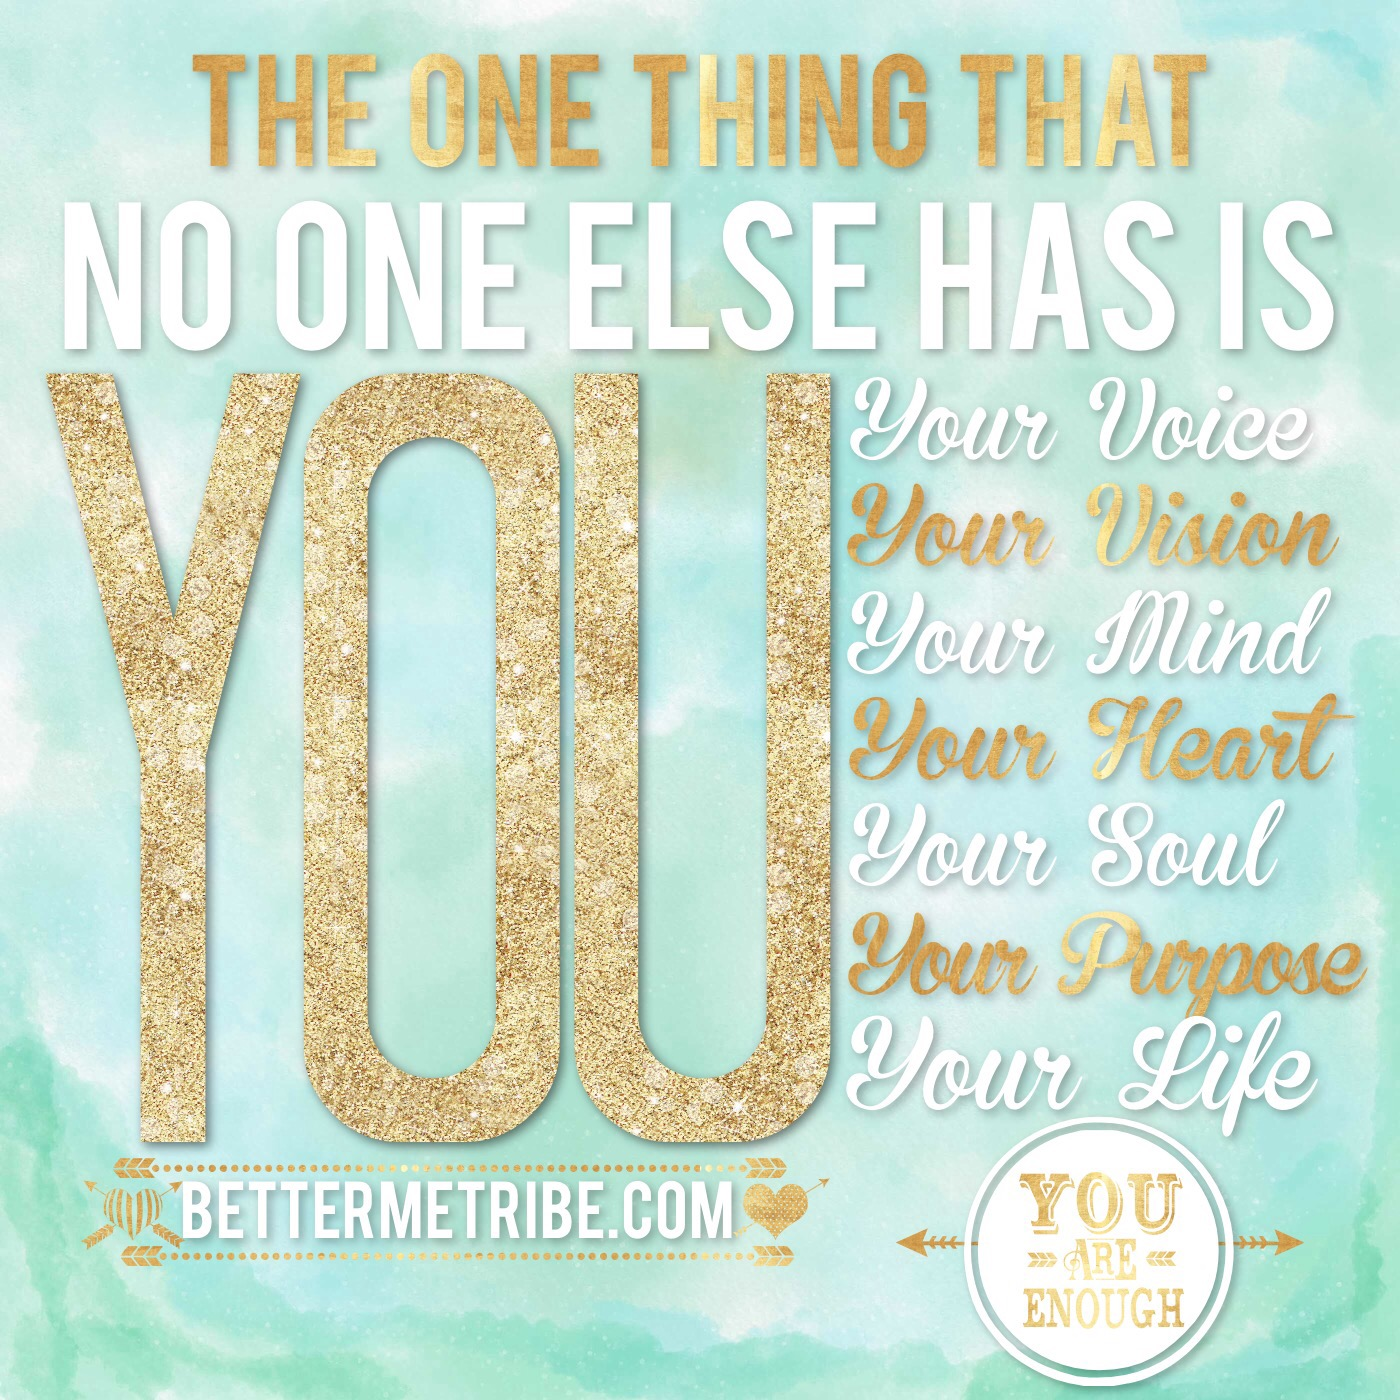 You are the one and only You!